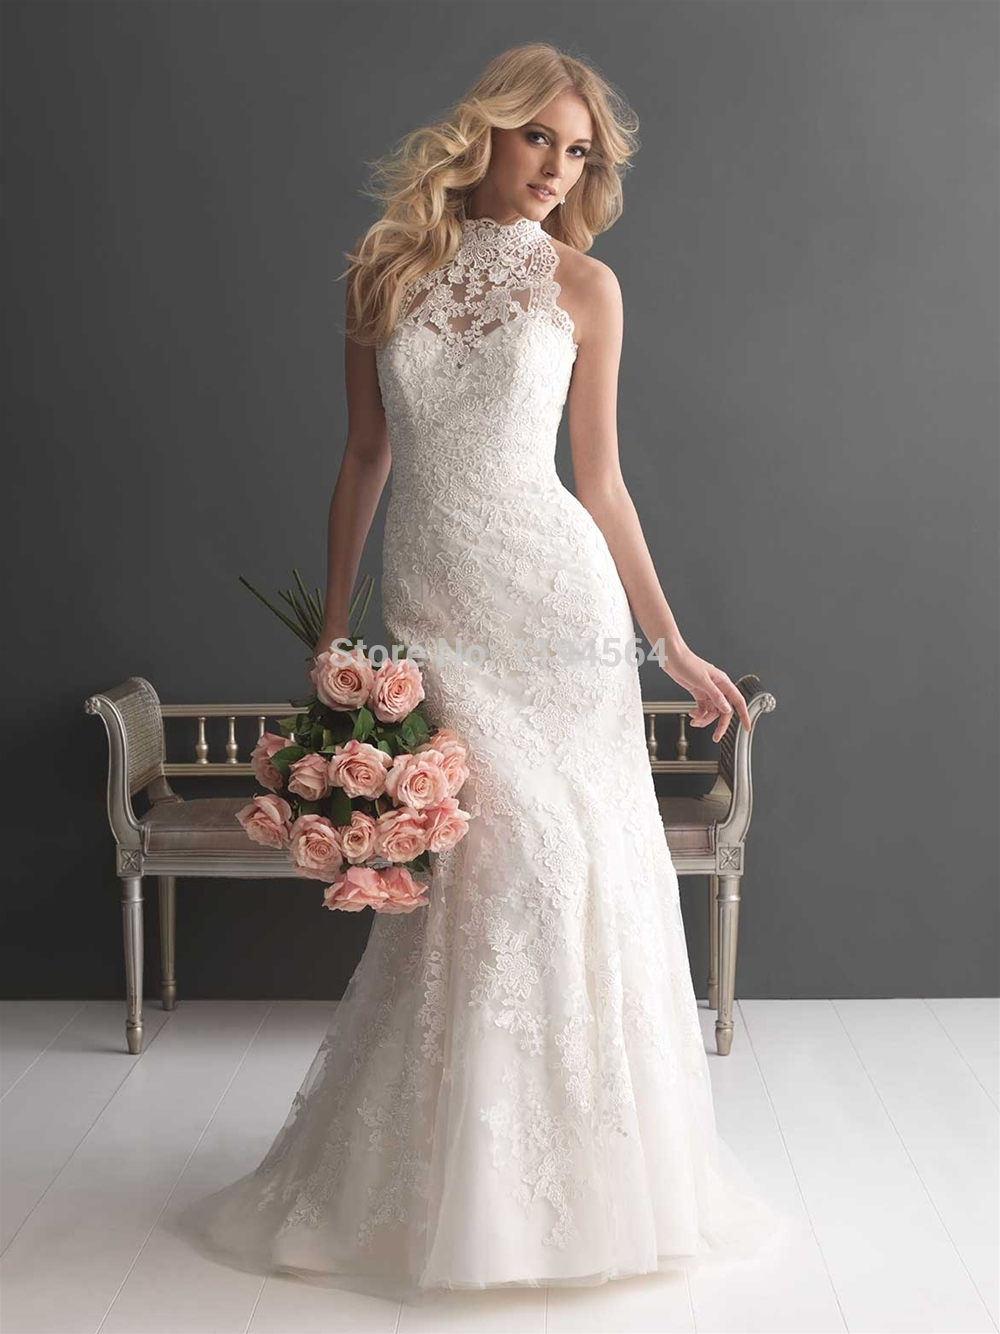 plus size wedding dresses less than $100, discount wedding dresses, gowns, davids bridal wedding dresses, inexpensive wedding dresses, elegant wedding dresses, cheap wedding gowns, gorgeous wedding dresses